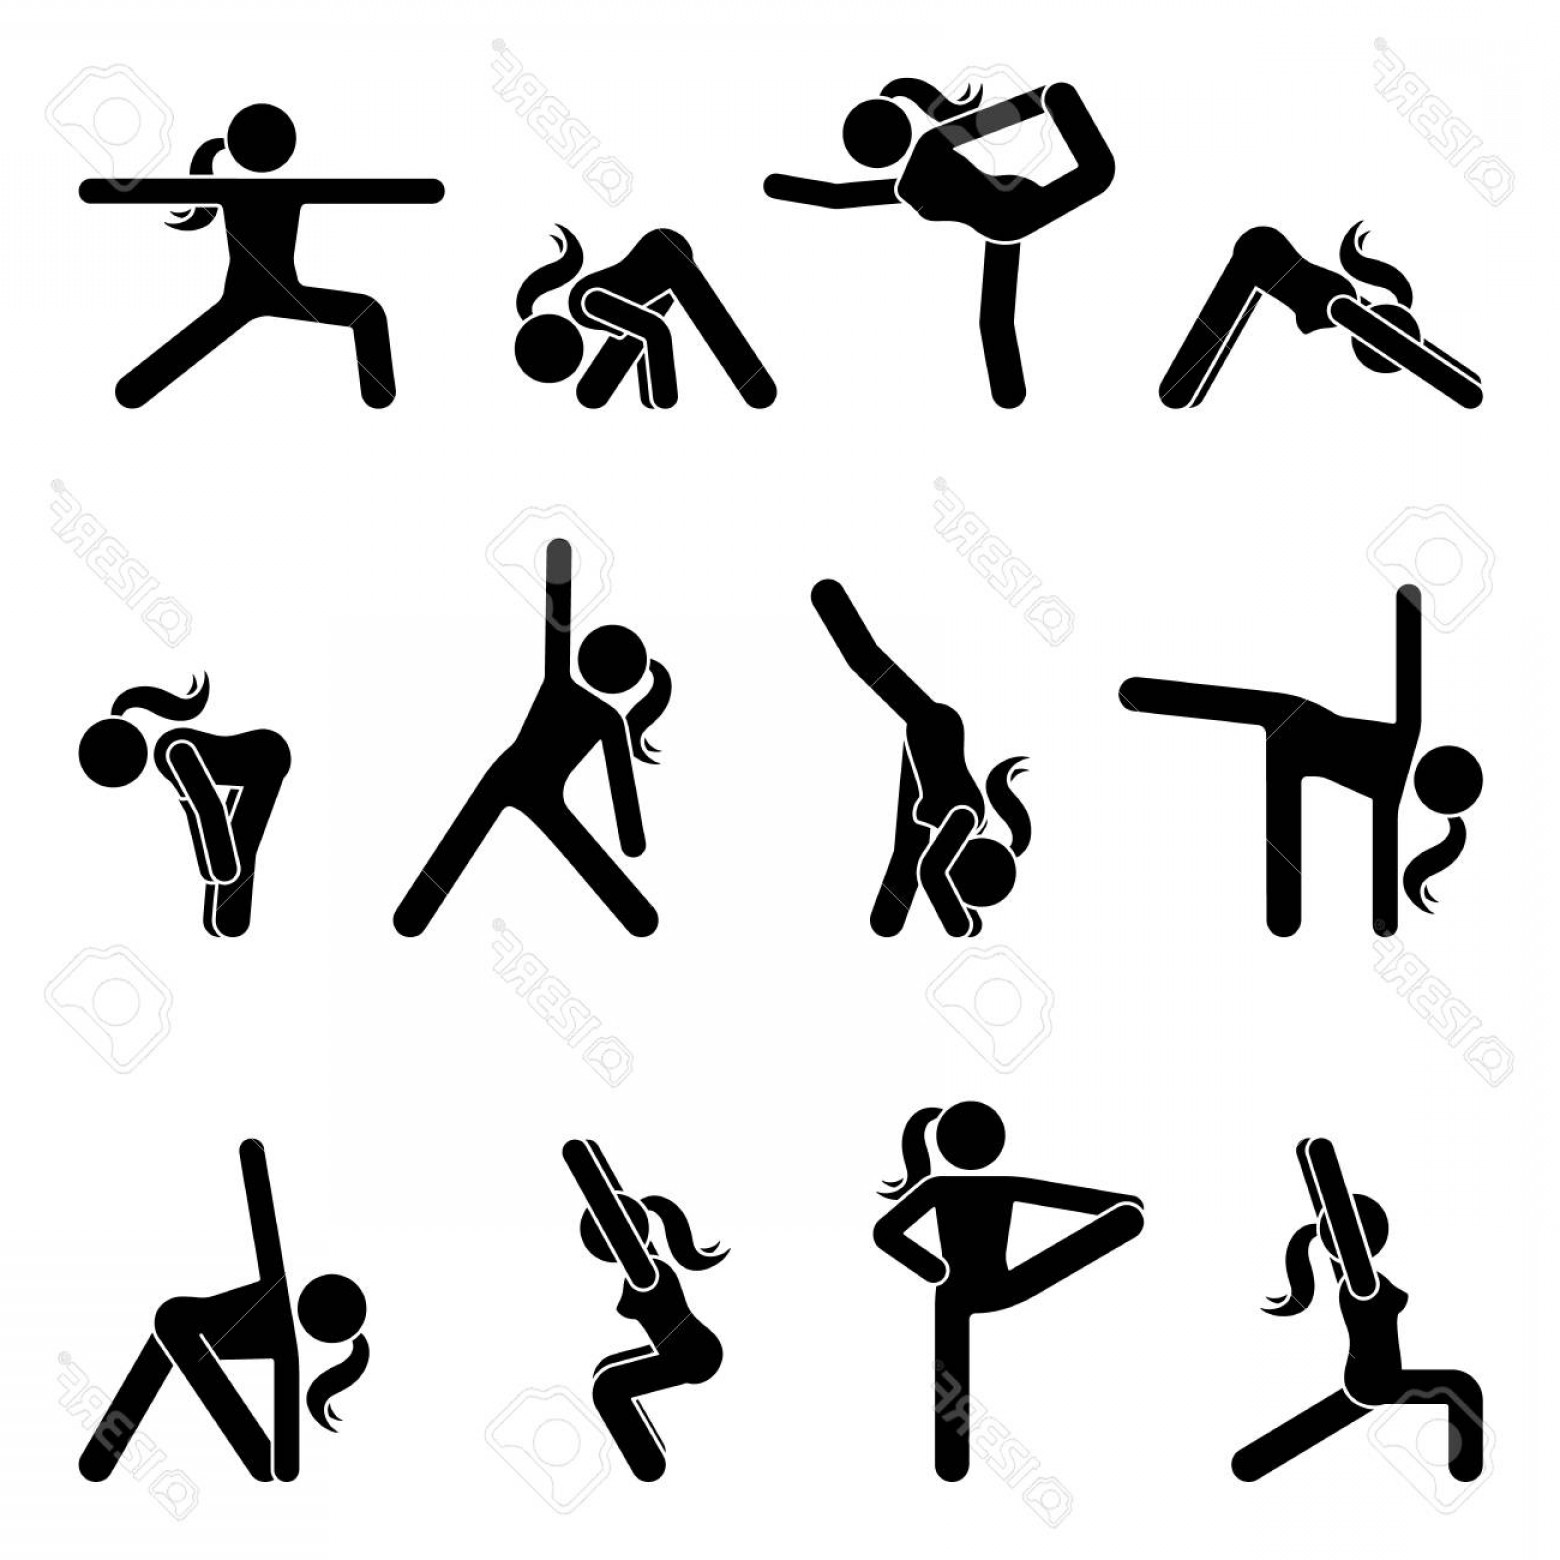 Vector Stick Figure Yoga Positions: Photostock Vector Stick Figure Girl Basic Yoga Position Set Vector Illustration Of Sportswoman Pictogram On White